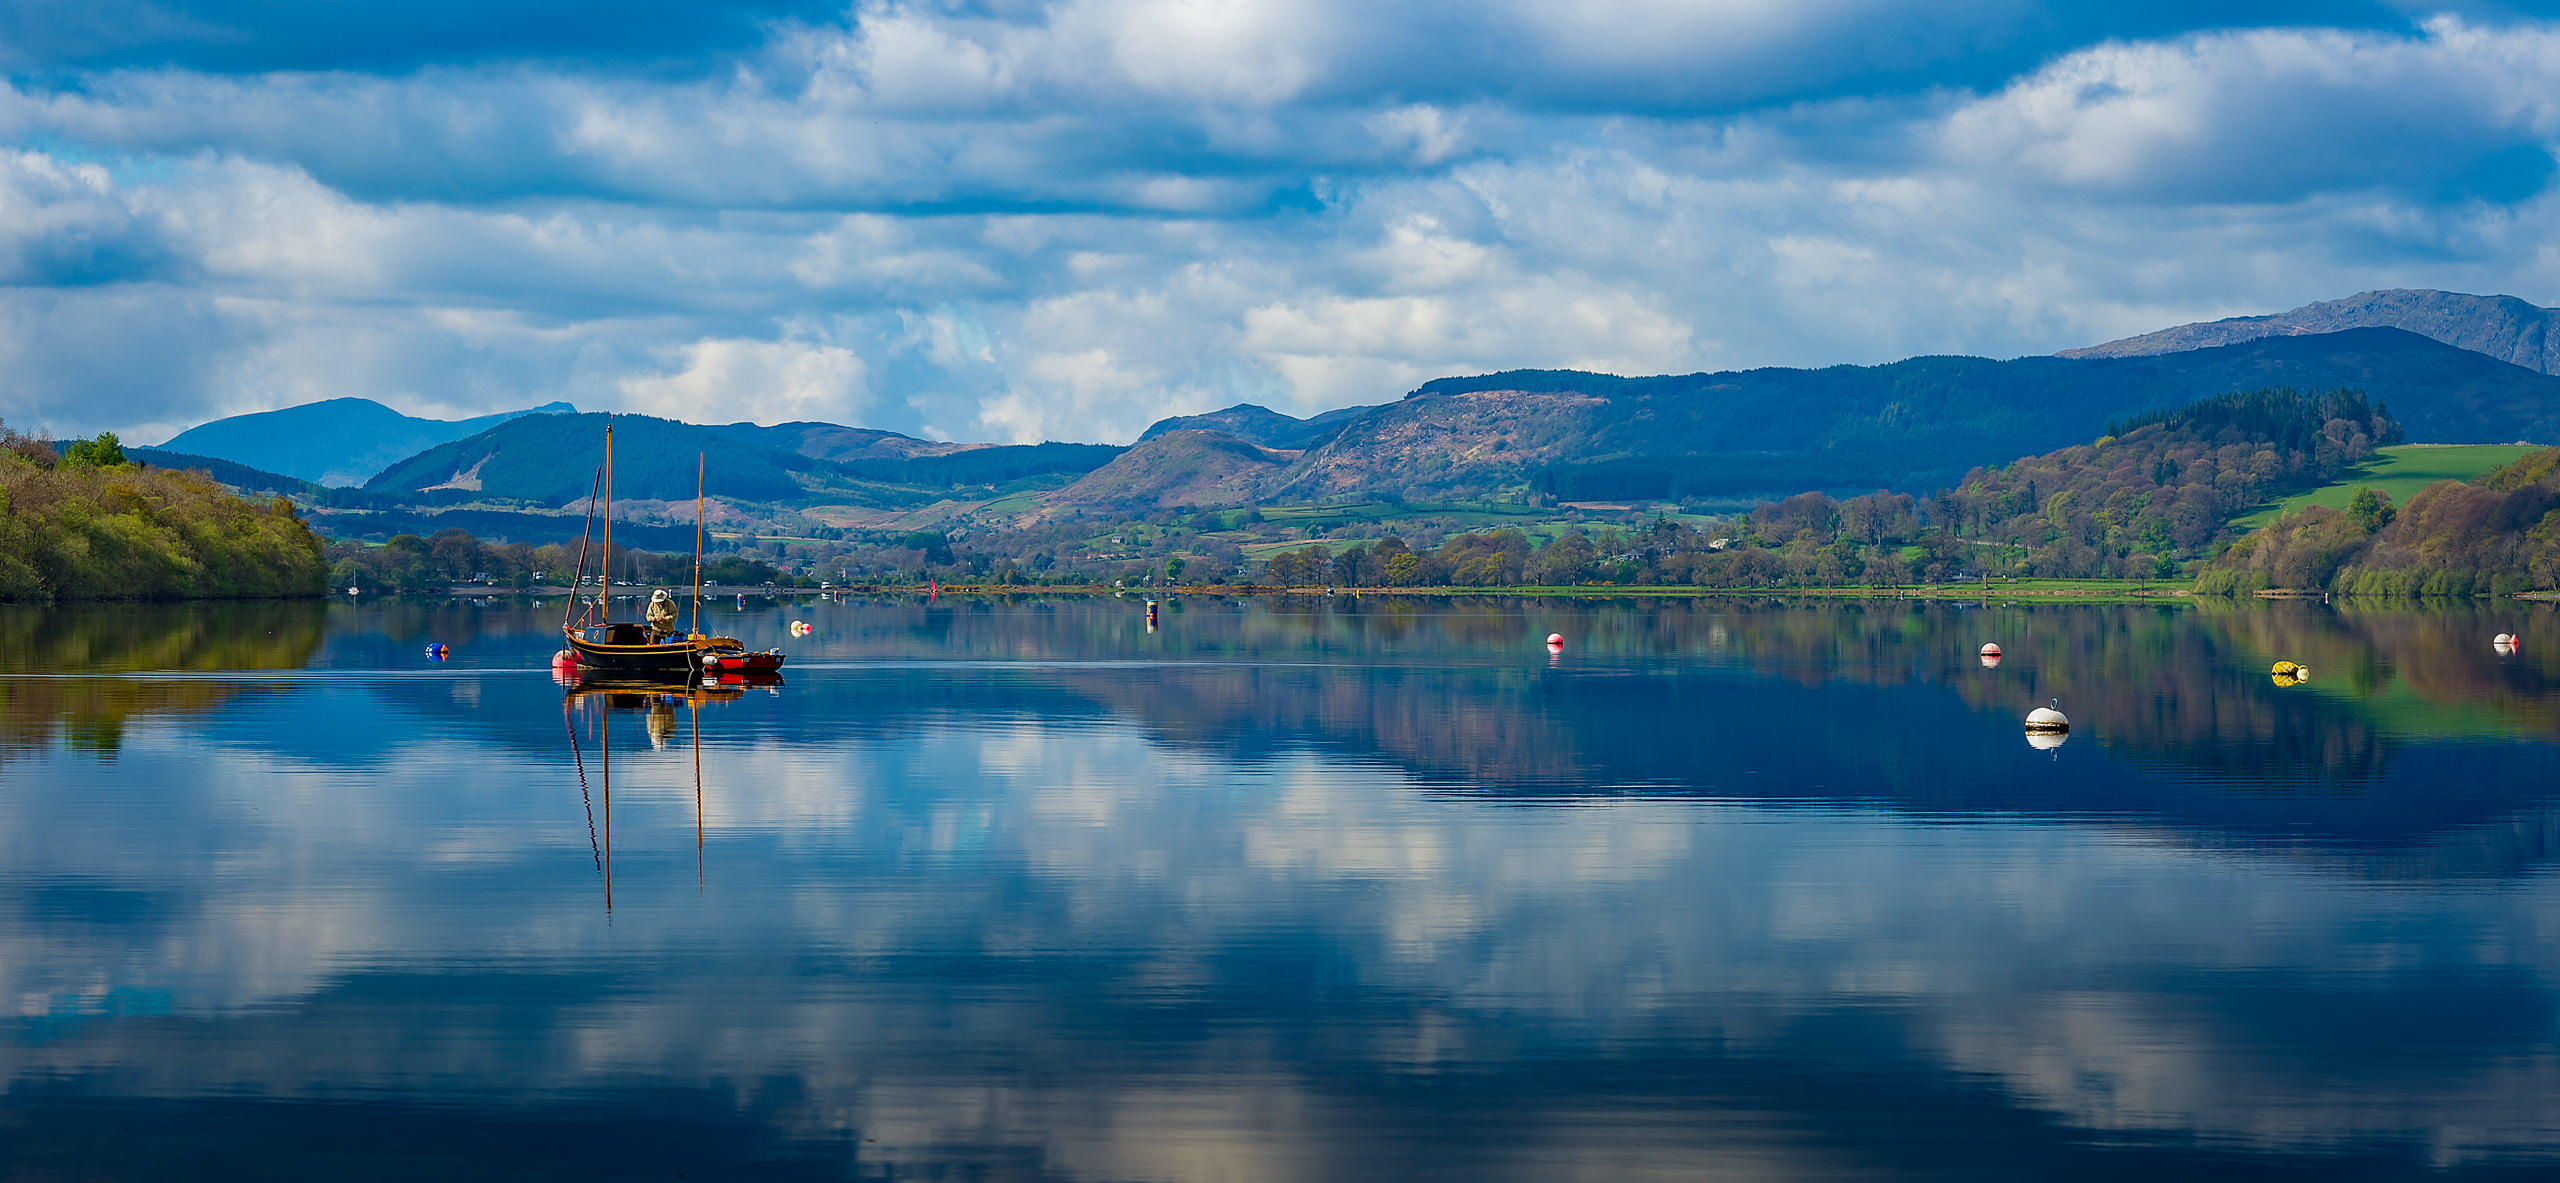 Fisherman in Boat on Calm Lake with Reflection in the Water